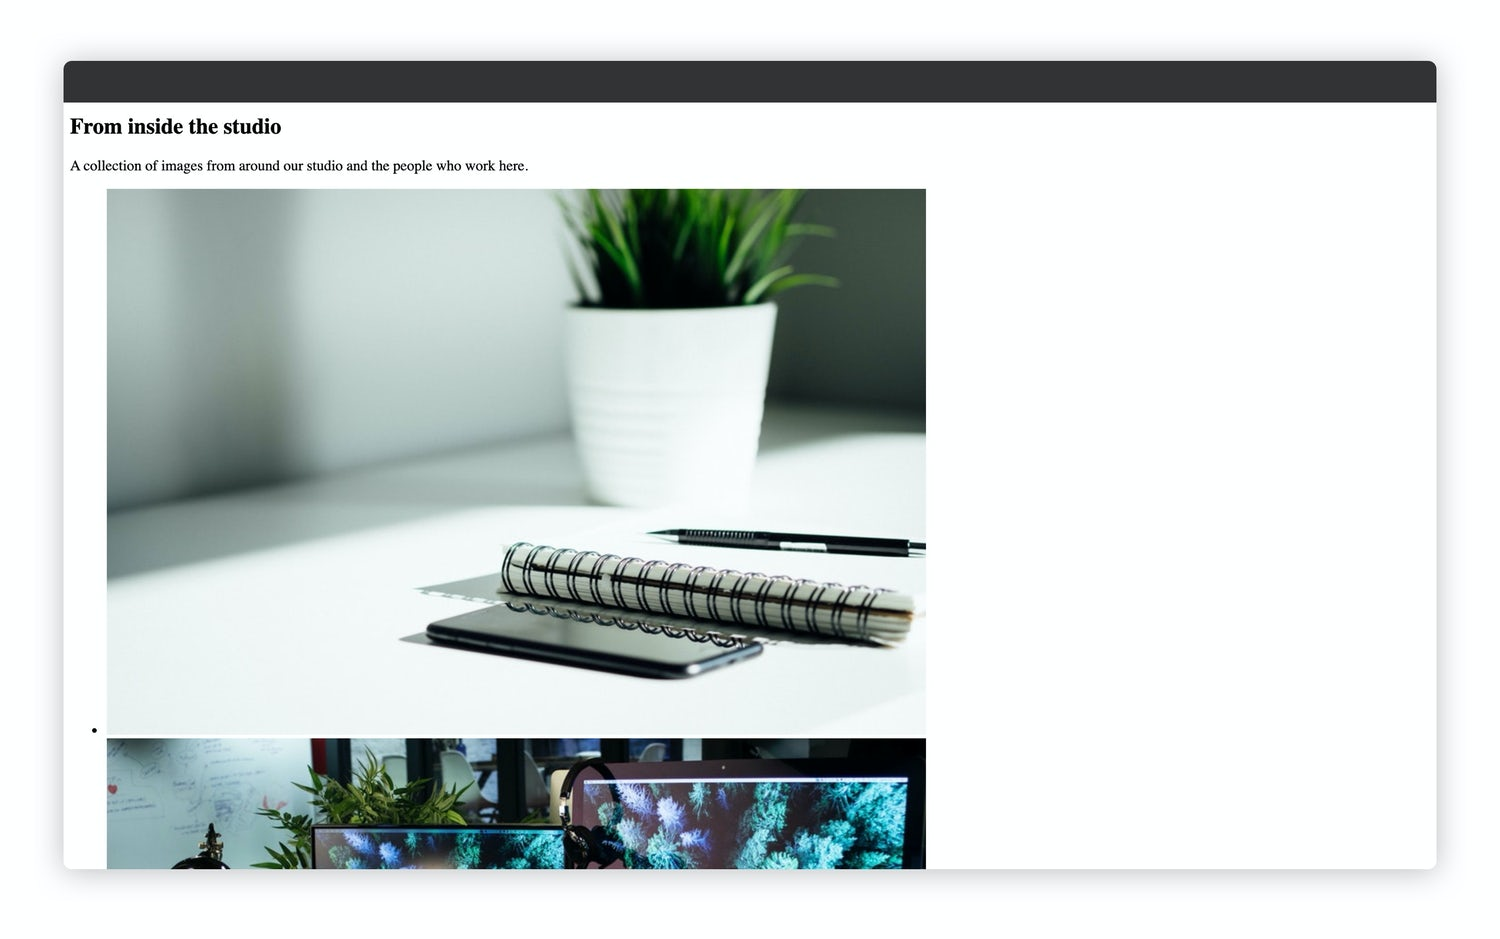 The addition of various hipster studio images on the home page